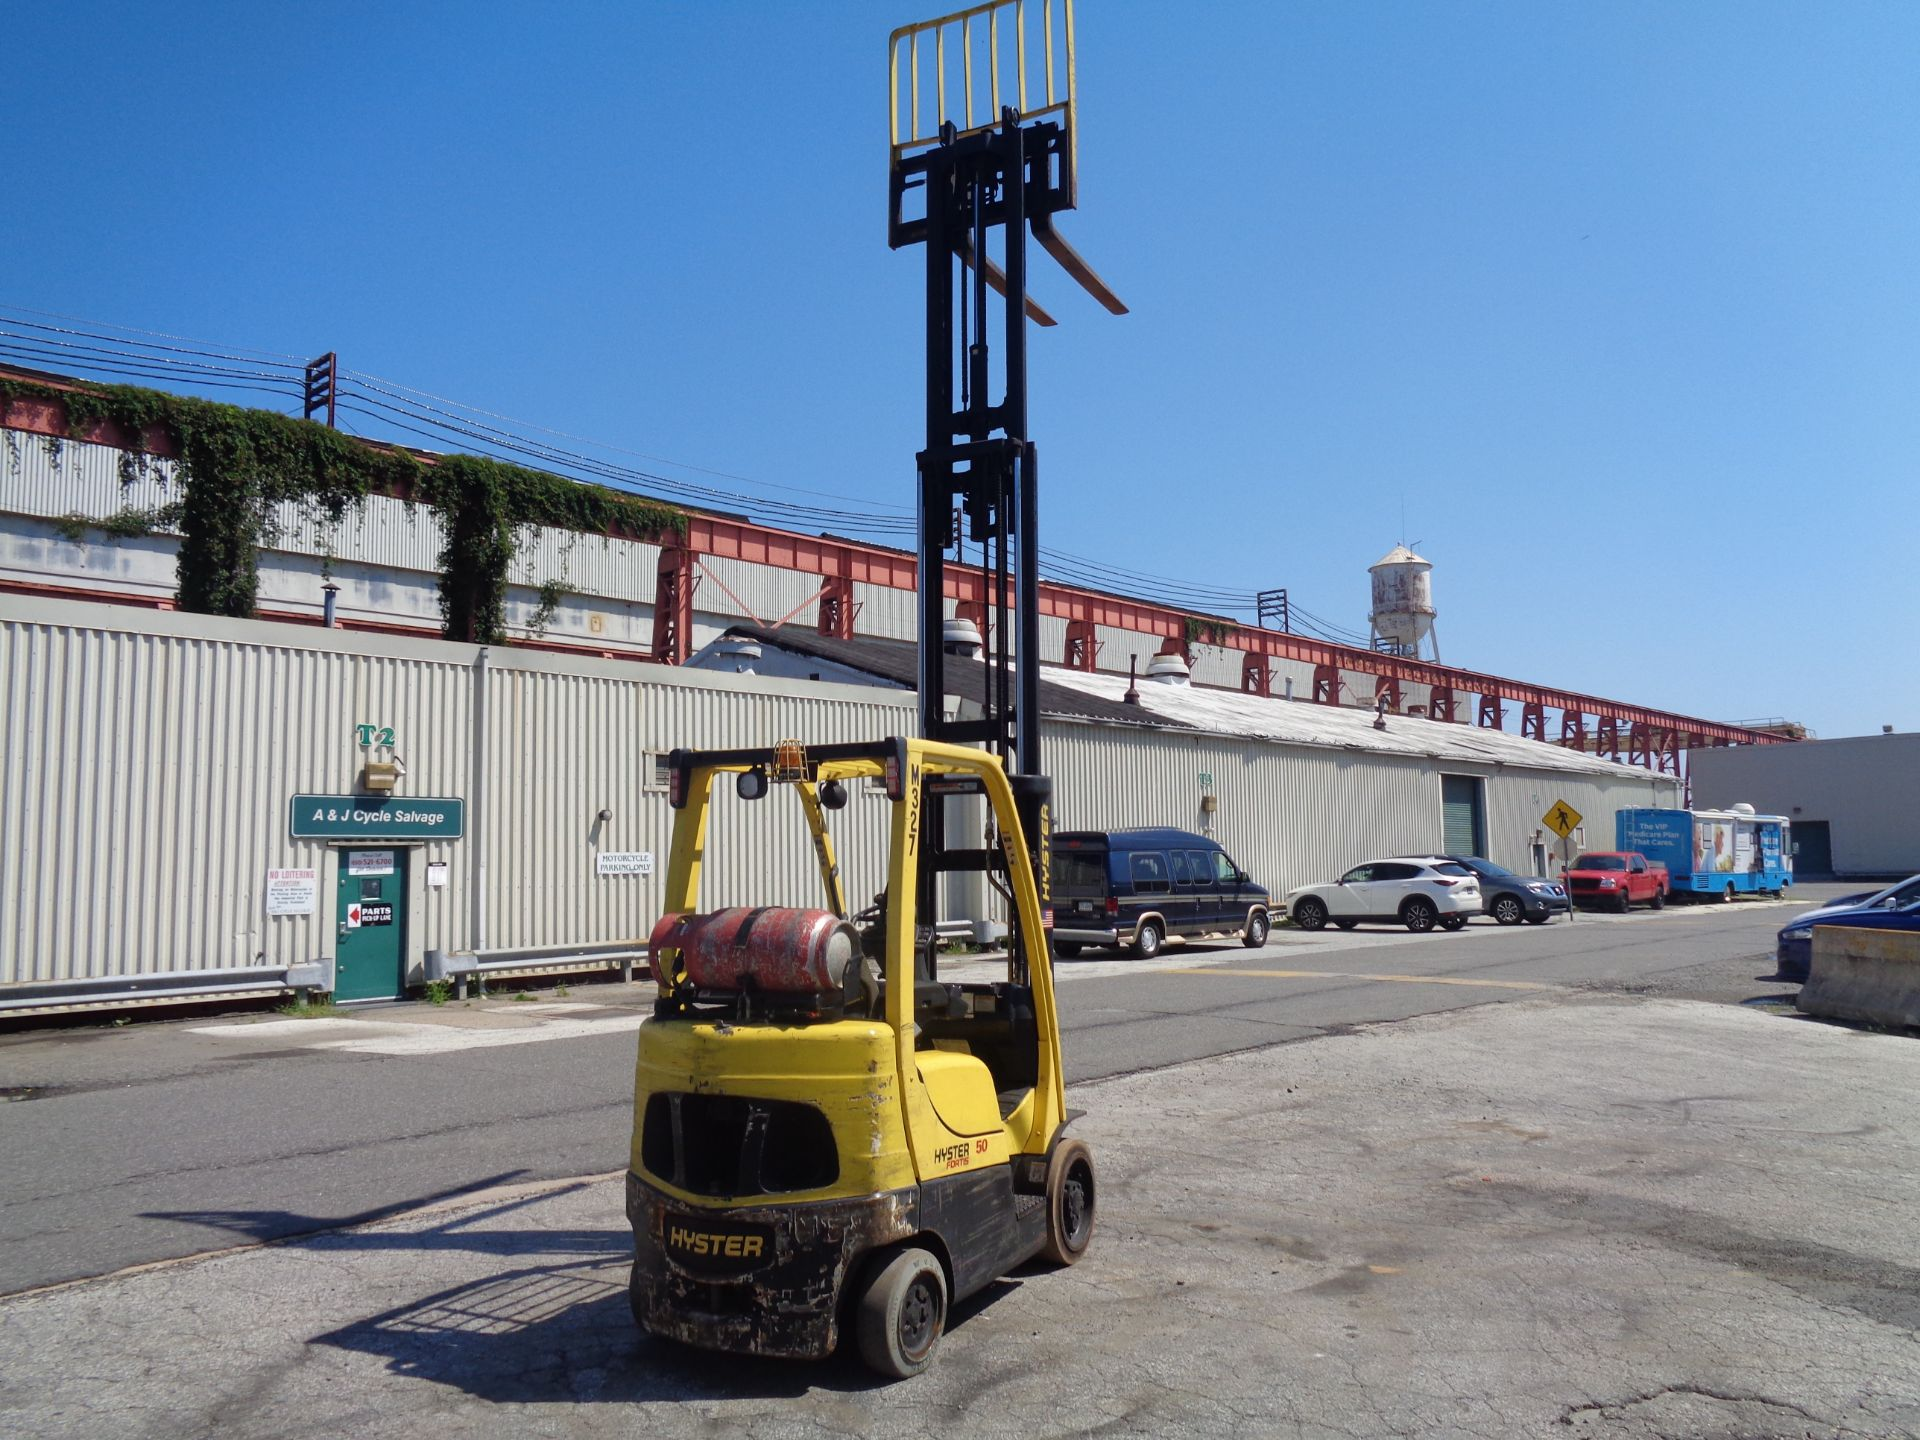 Lot 57 - Hyster S50FT 5,000lb Forklift